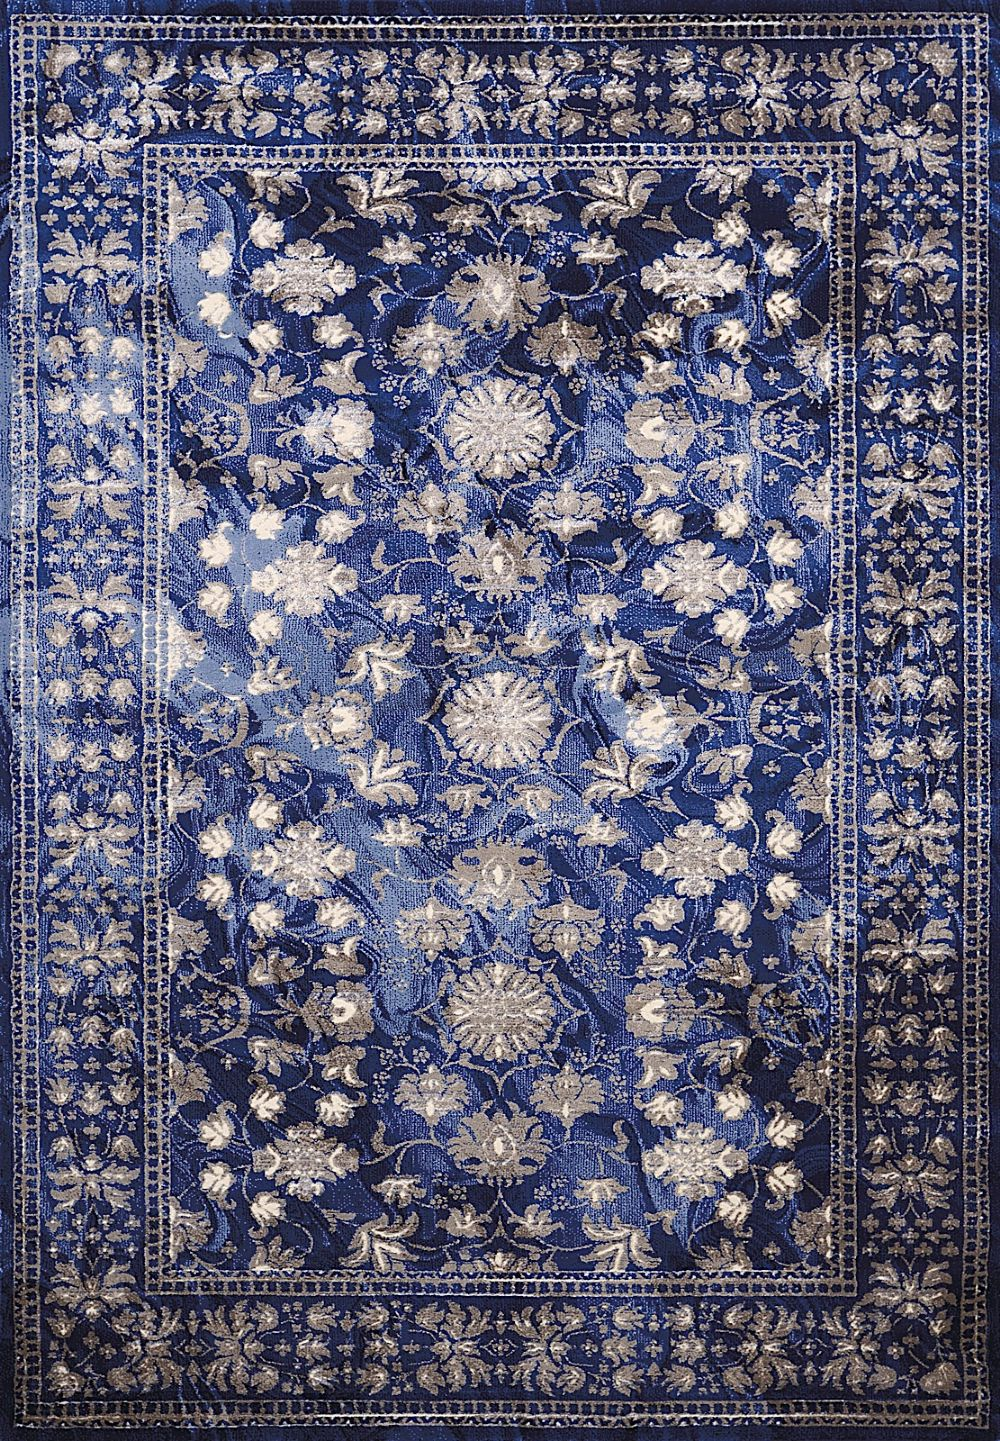 united weavers christopher knight mirage traditional area rug collection